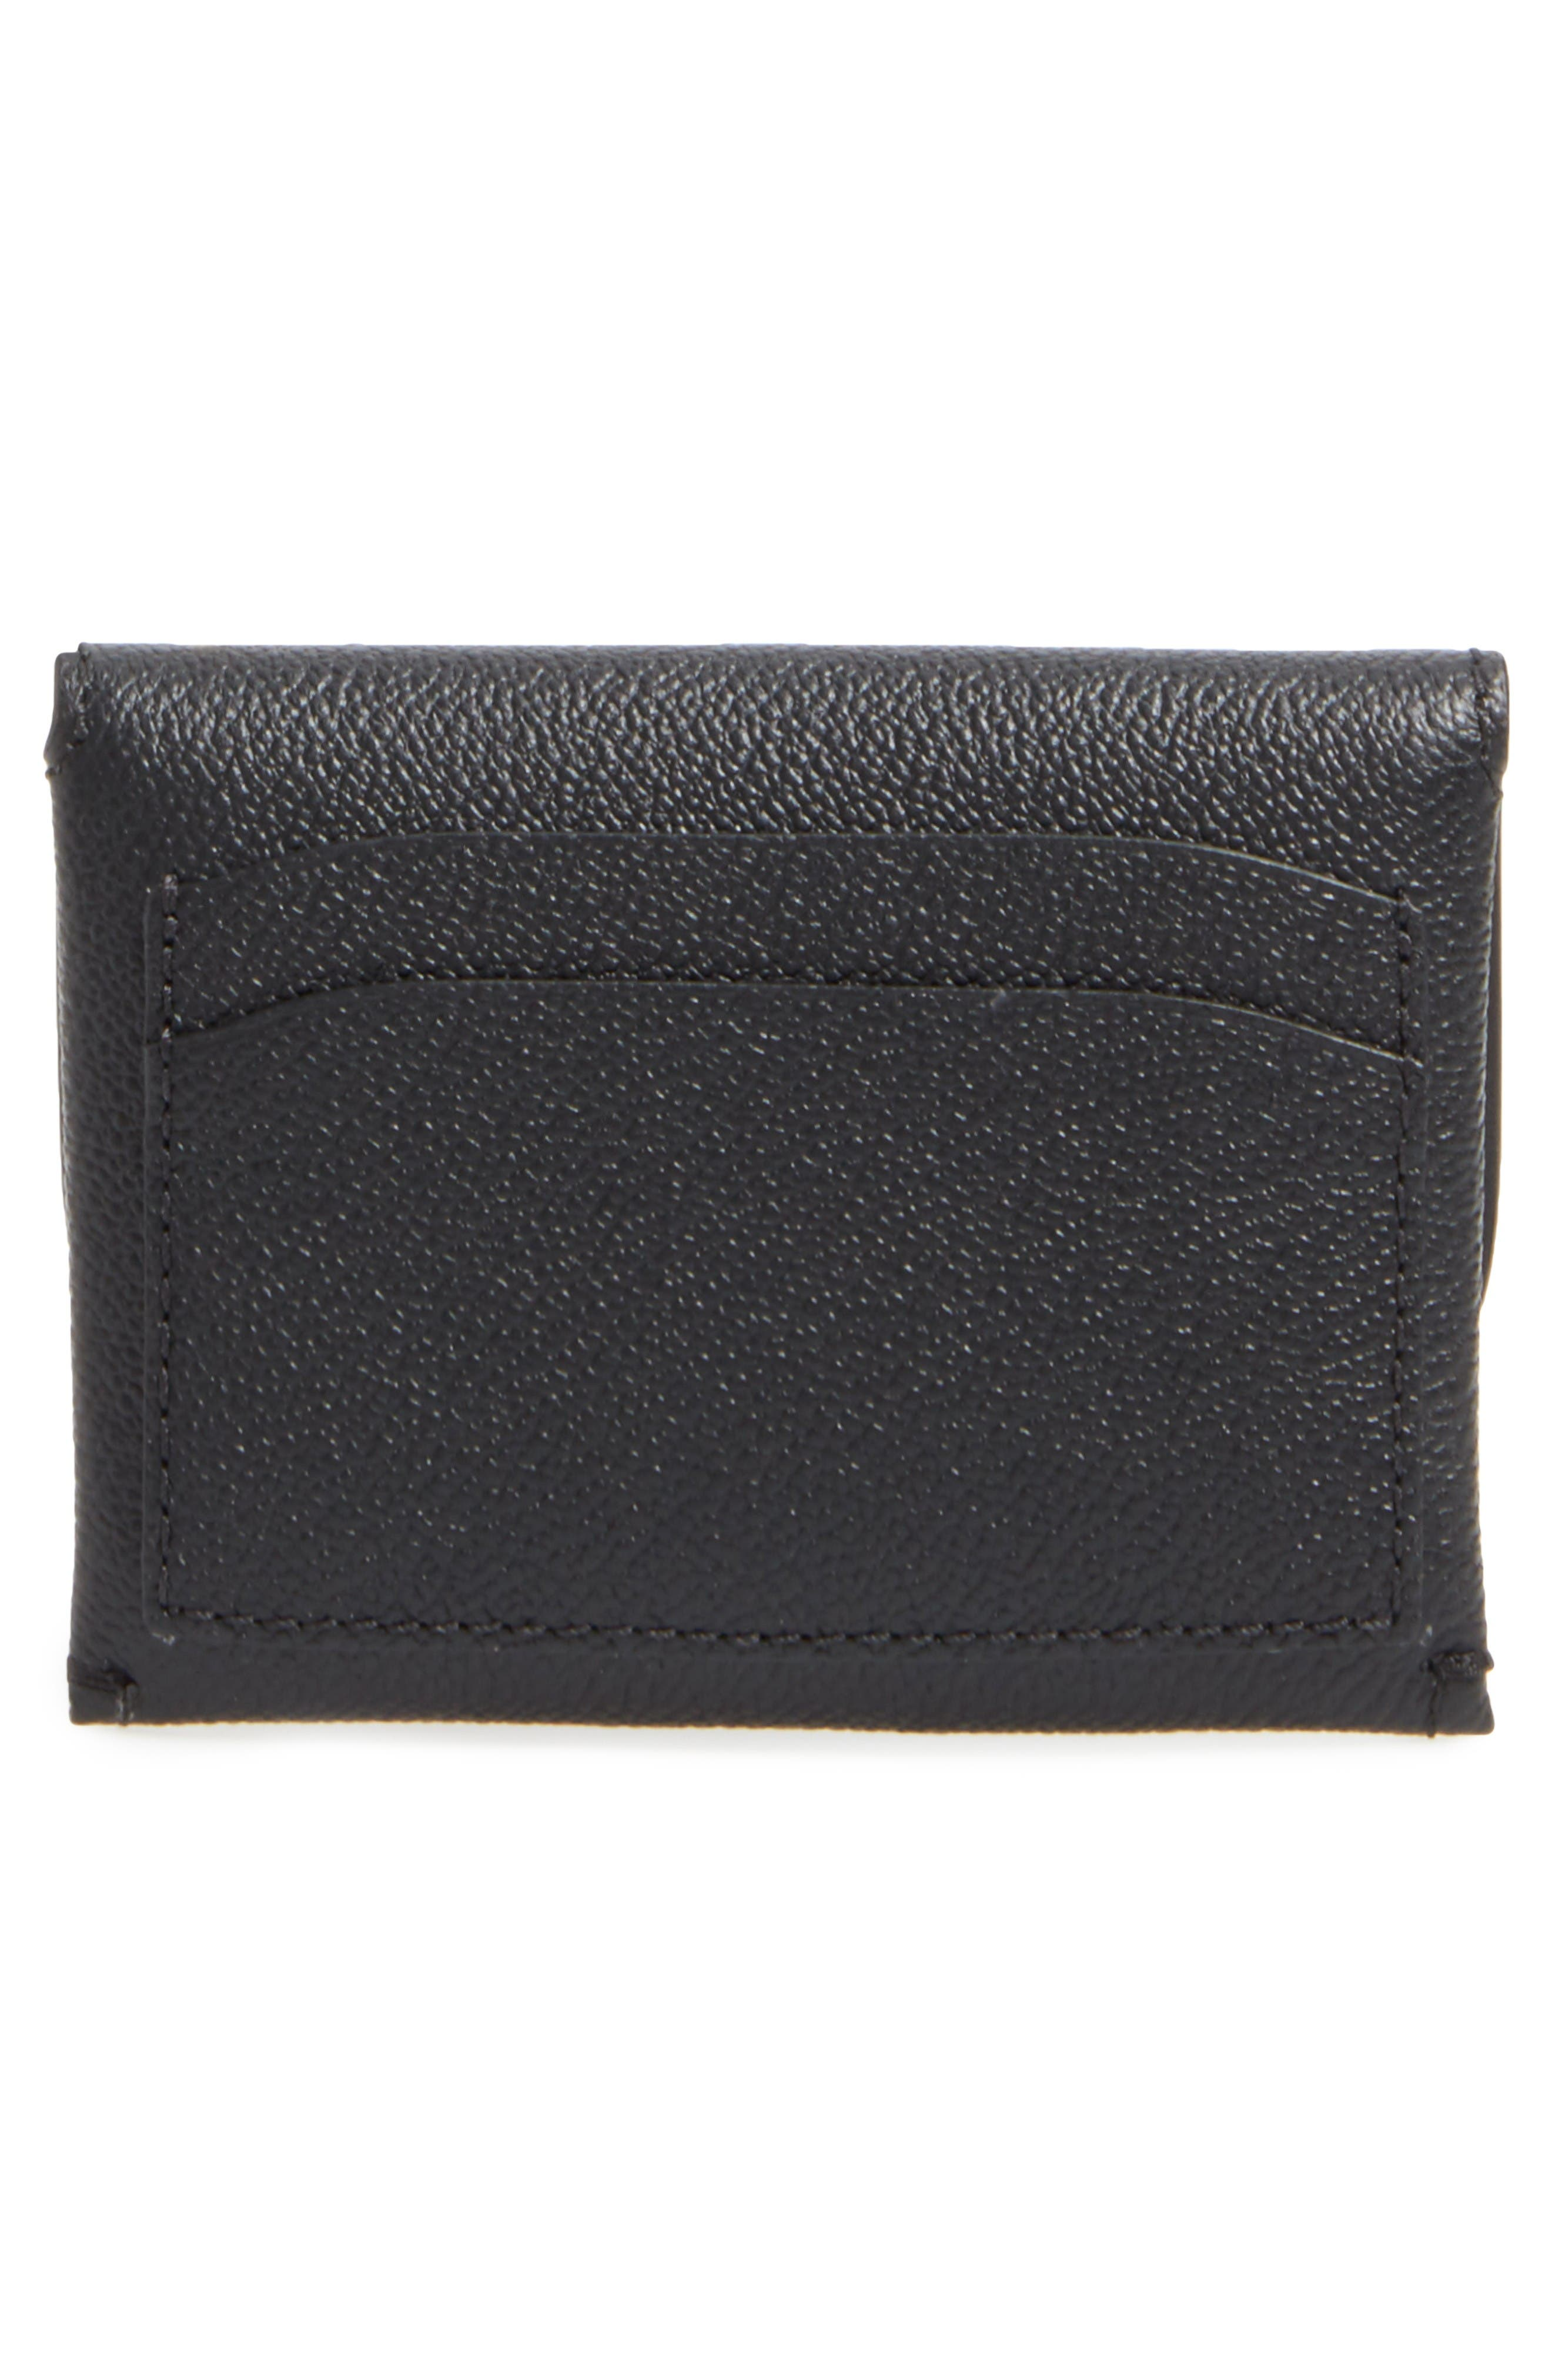 Mayfield Leather Card Case,                             Alternate thumbnail 3, color,                             Black